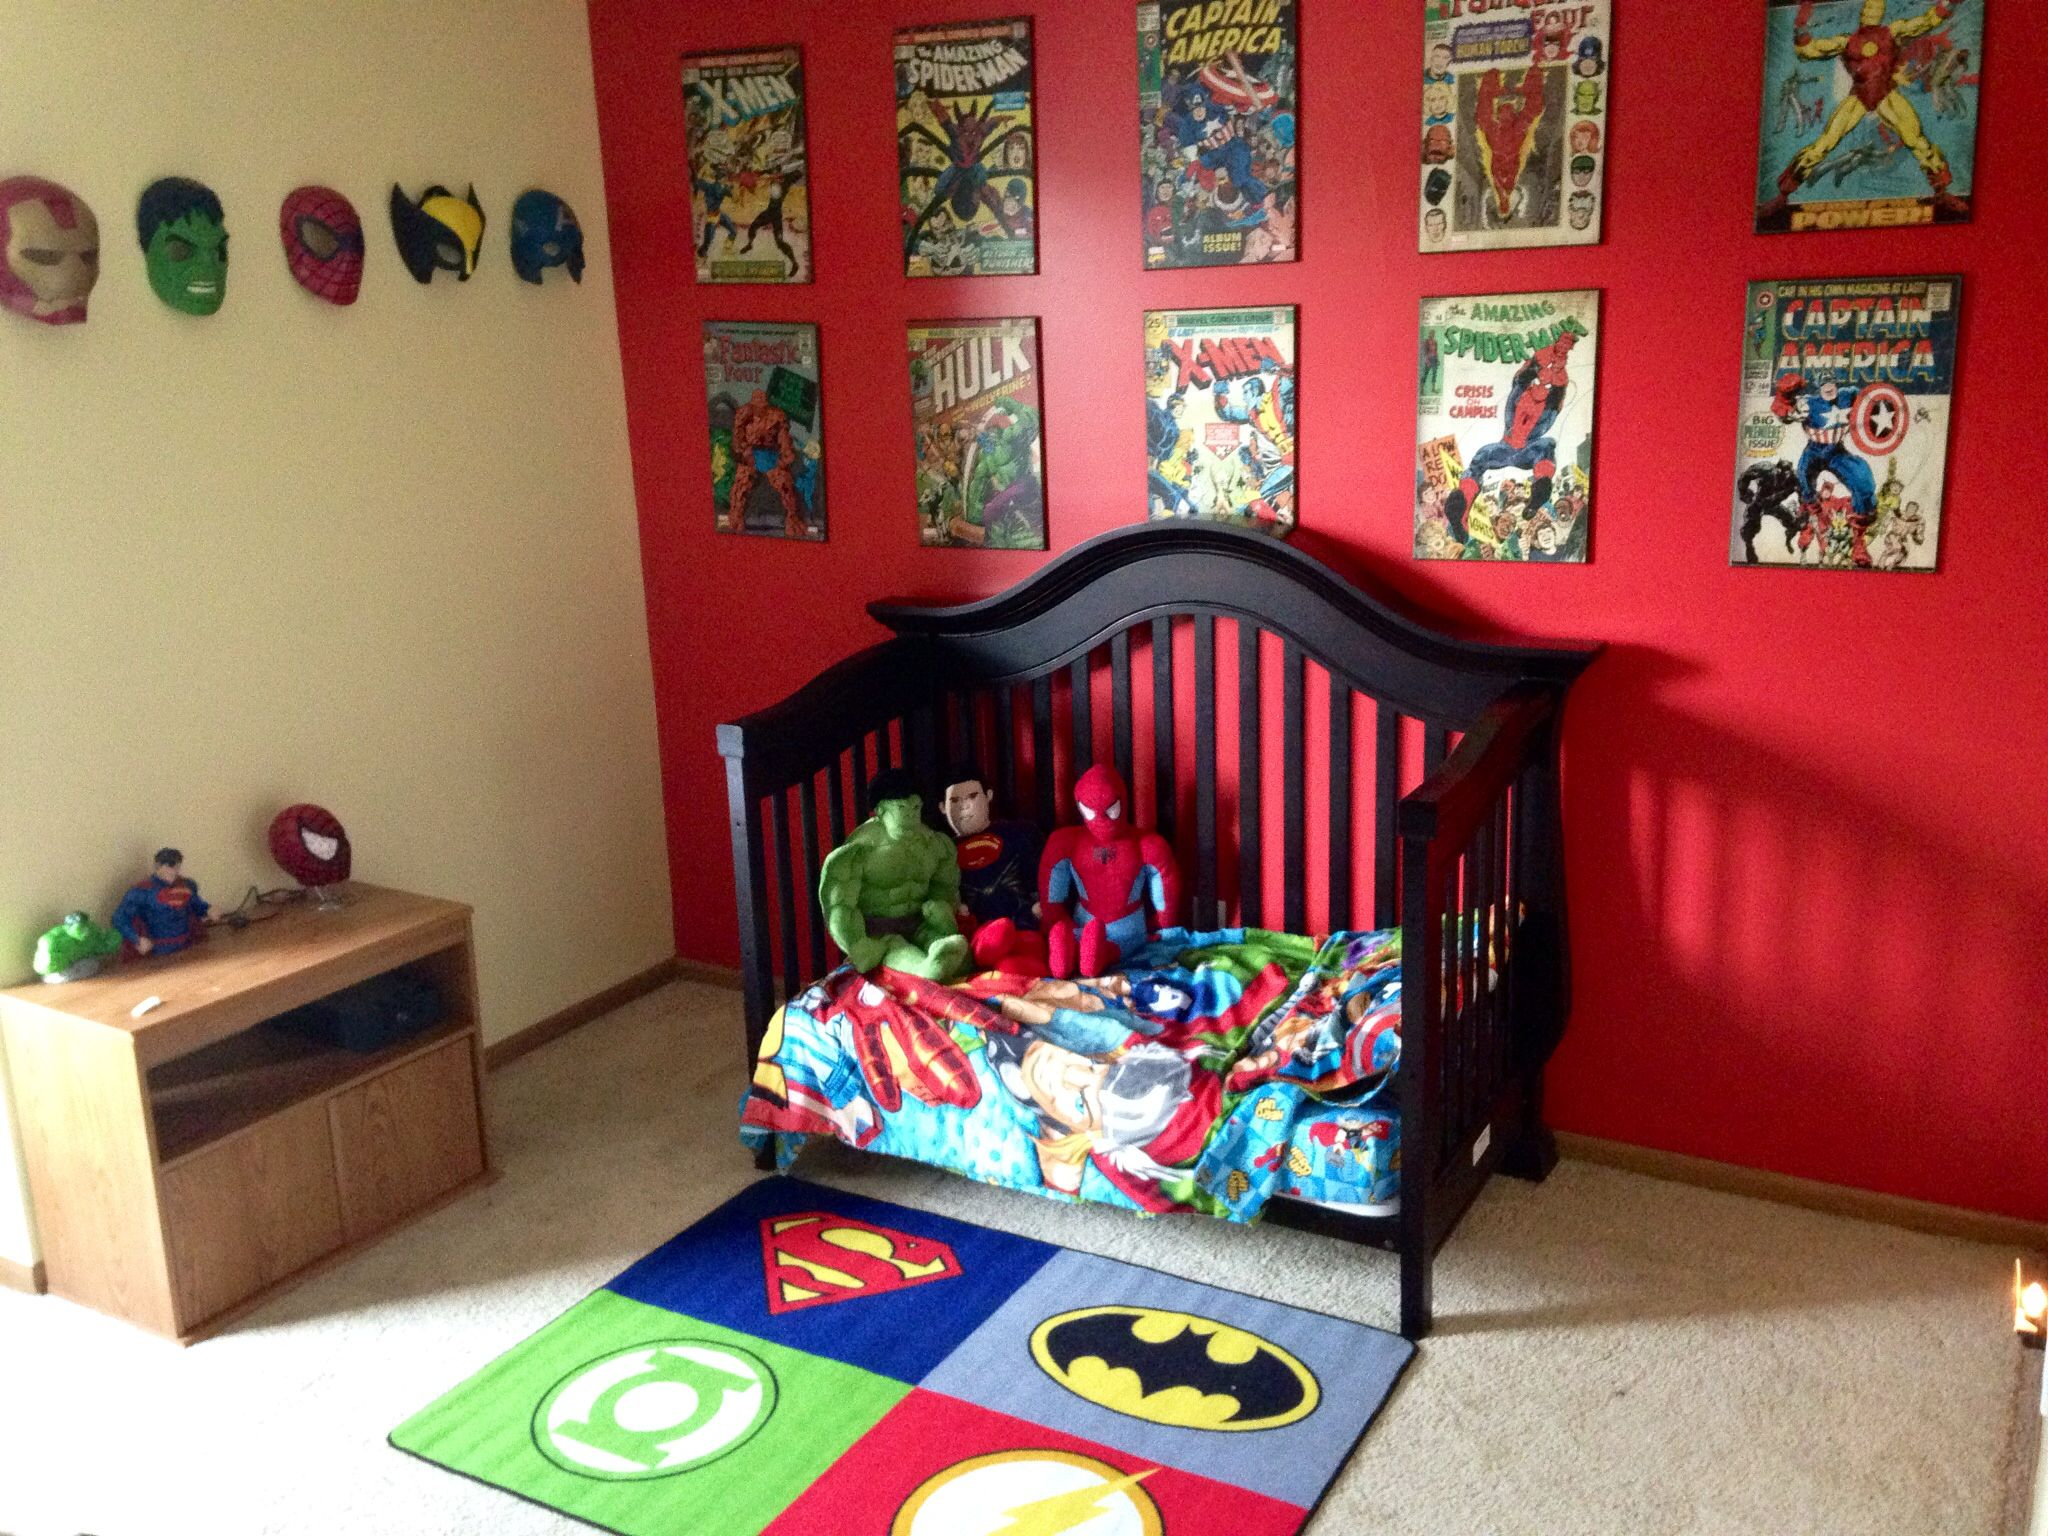 Super hero room | Comic Book Room | Pinterest | Room, Room ...